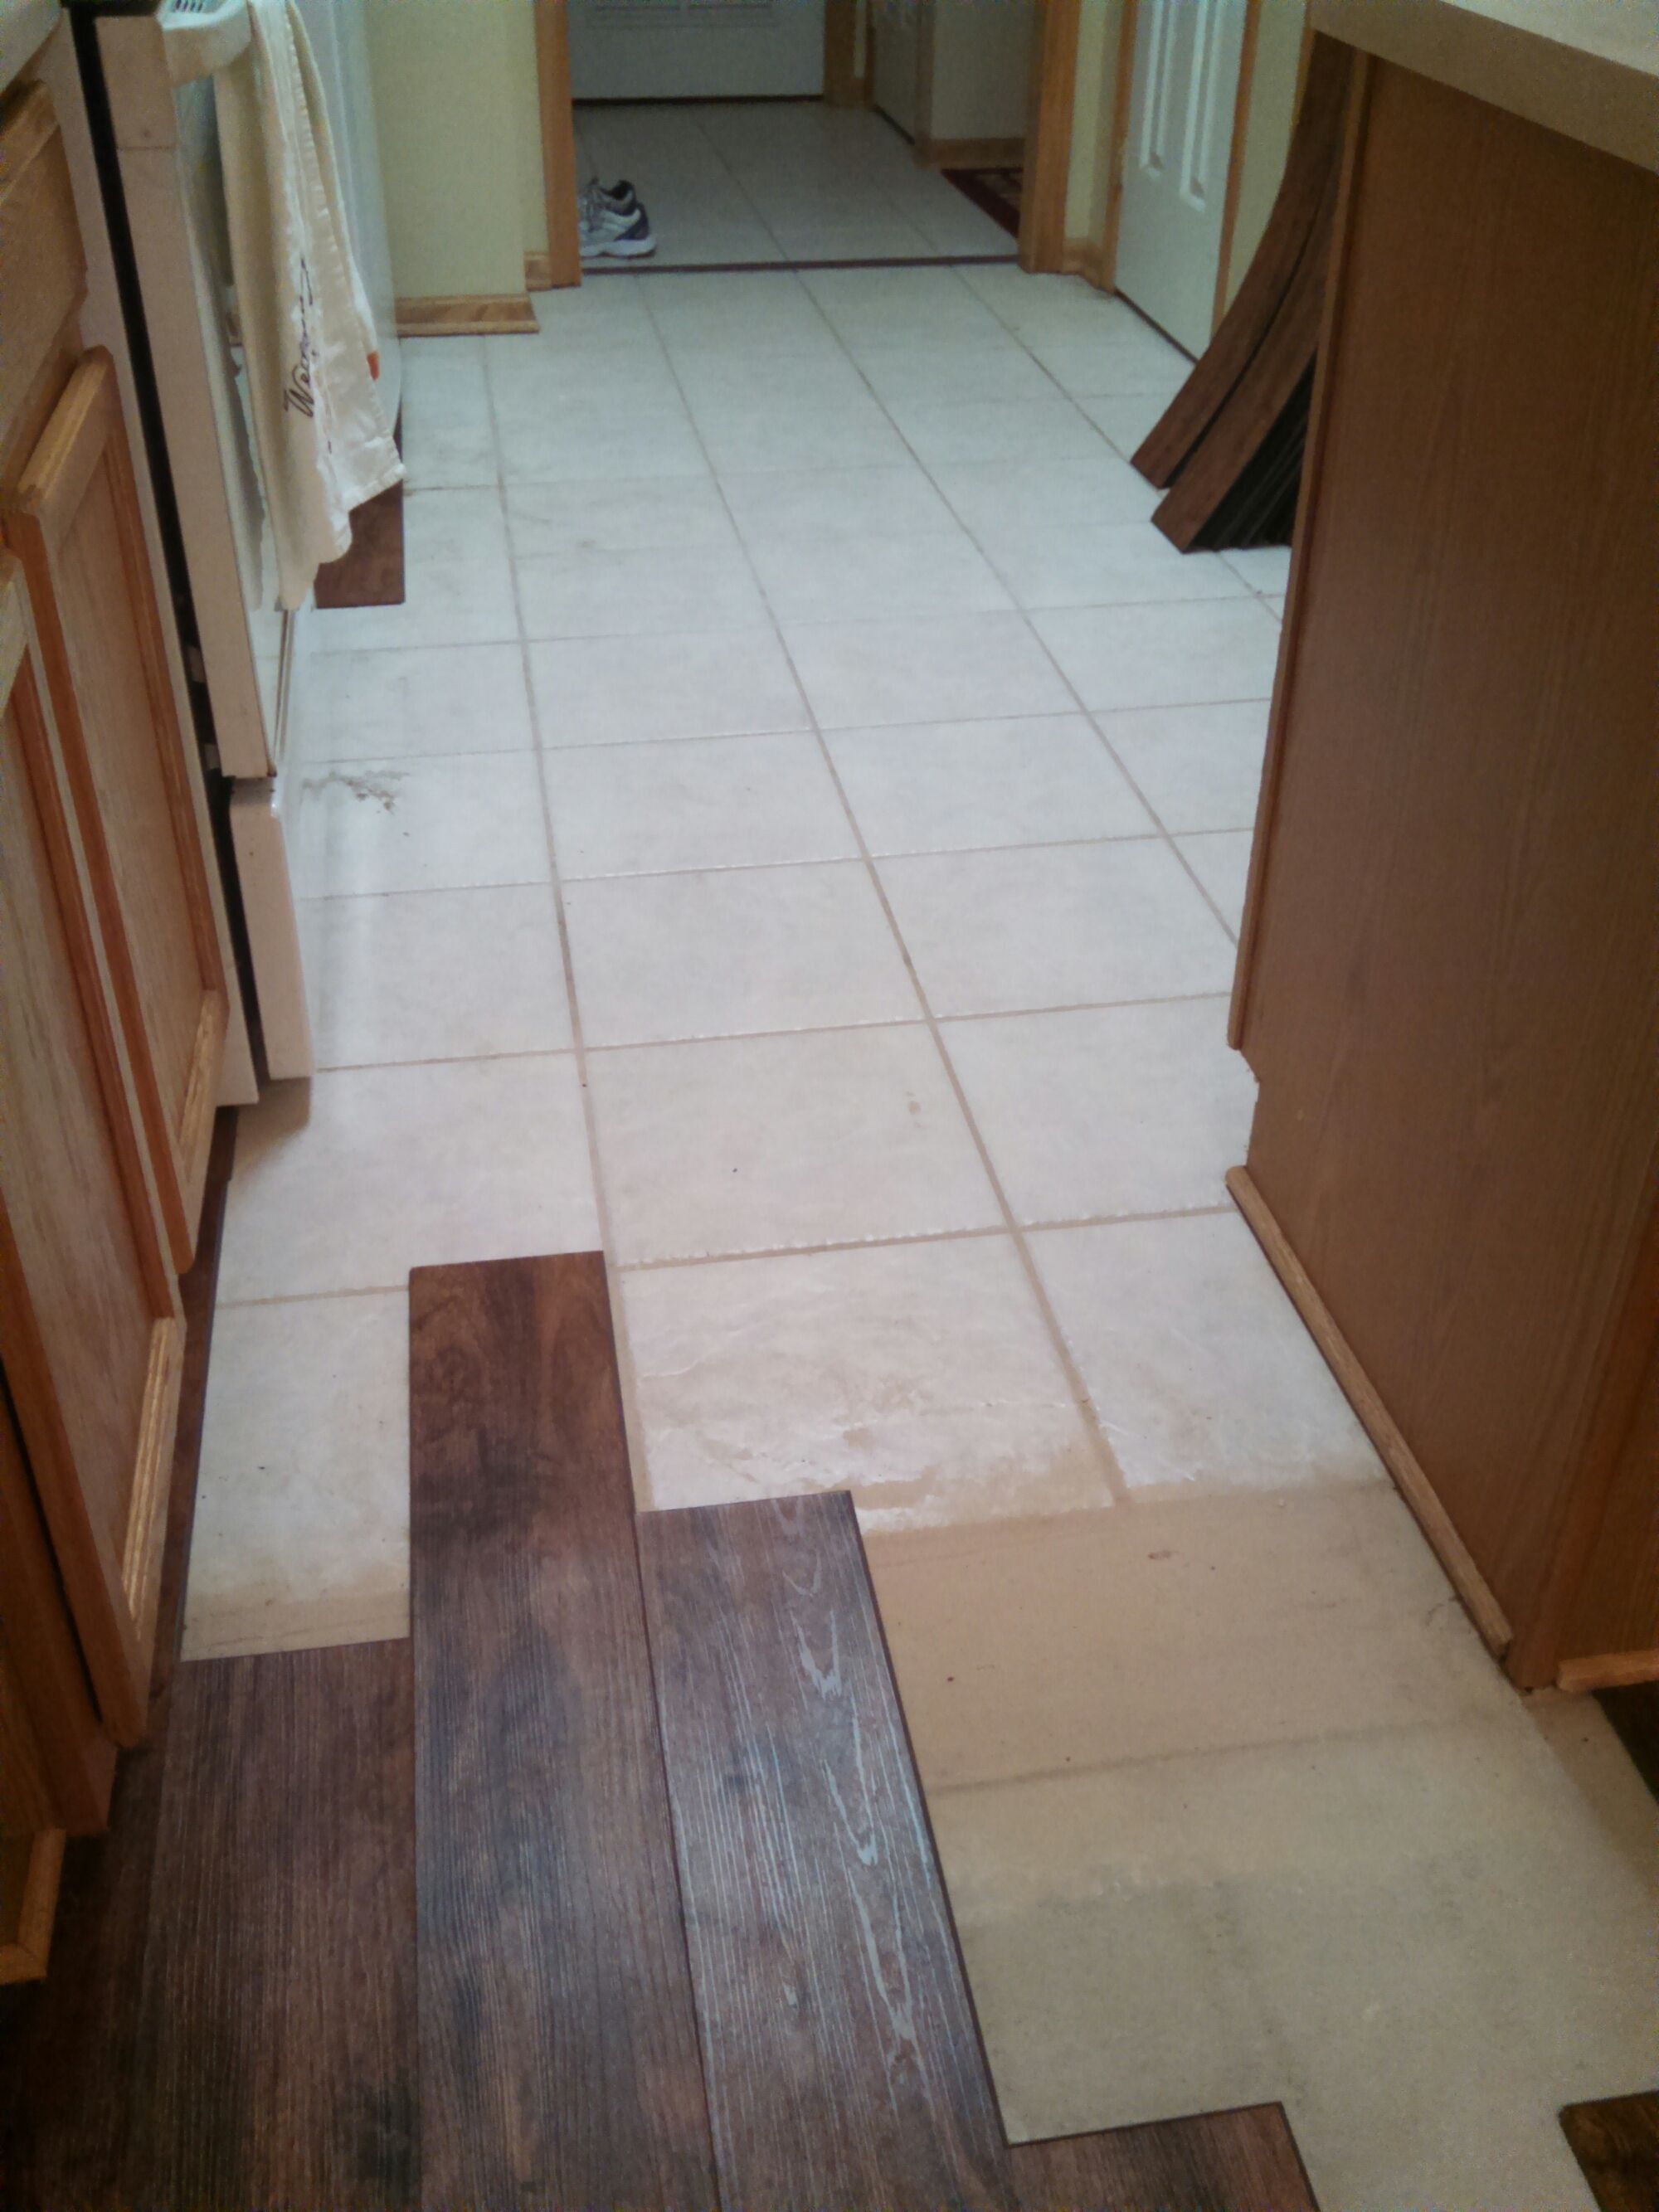 Install Laminate Flooring Over Ceramic Tile. Feels free to